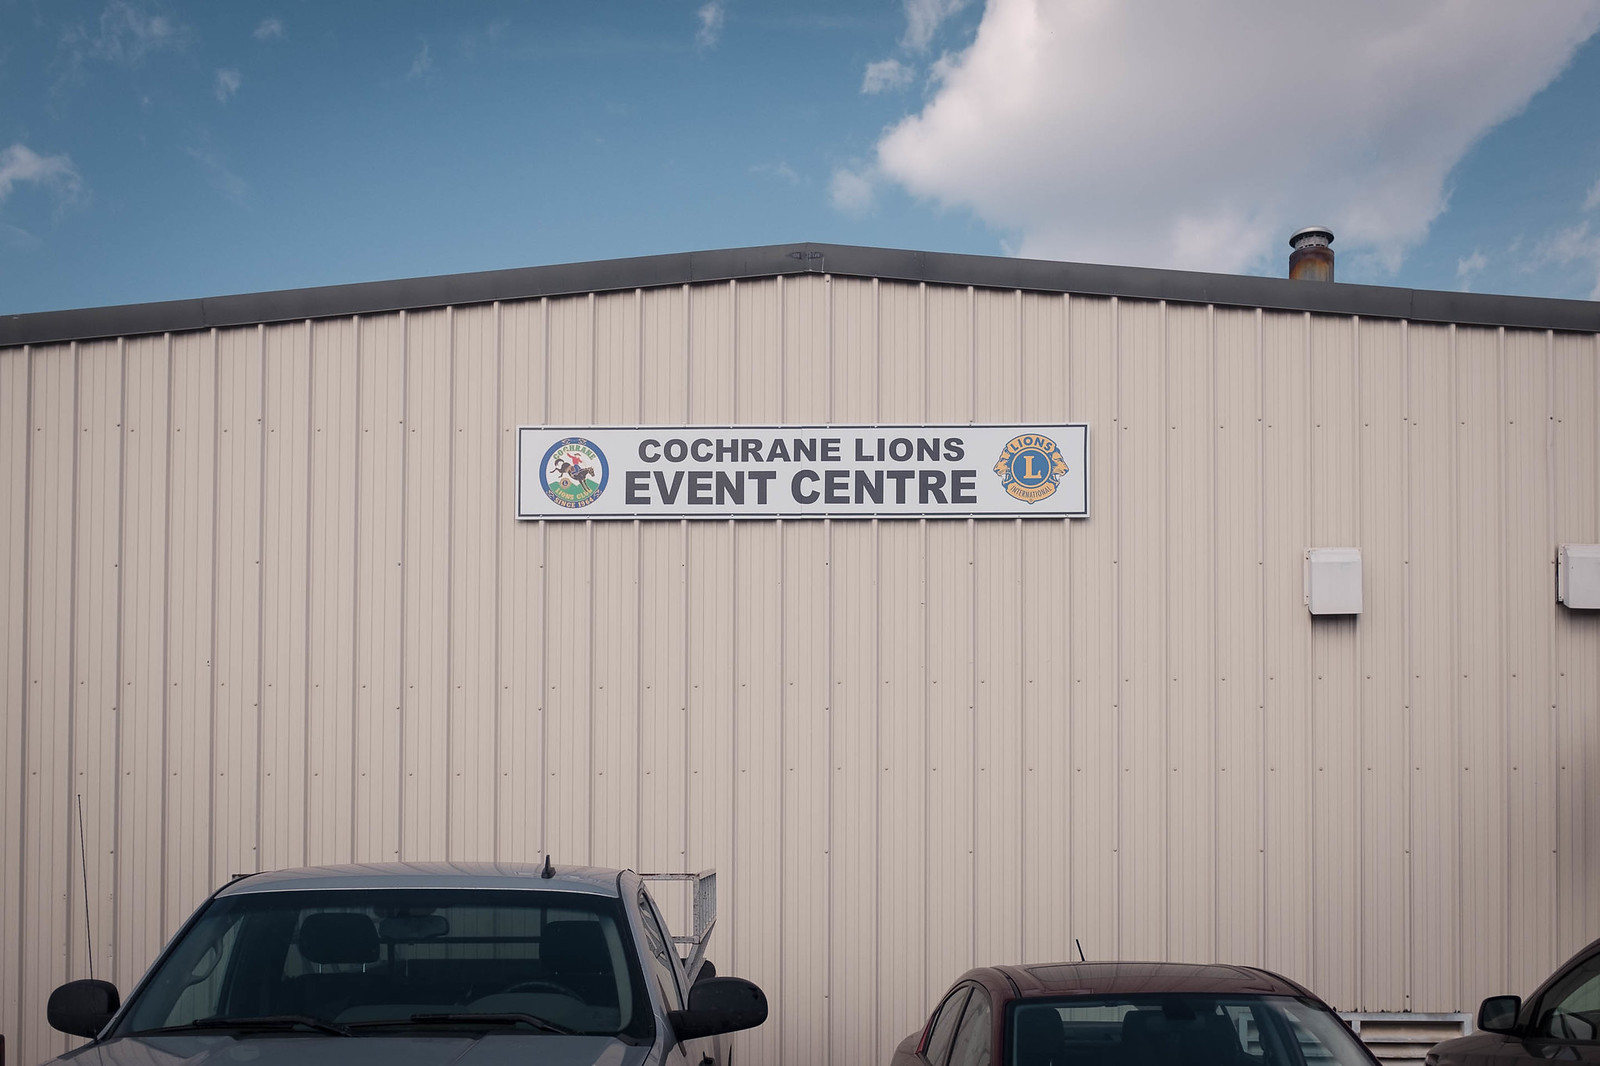 Sign on warehouse reading Cochrand Lions Event Center